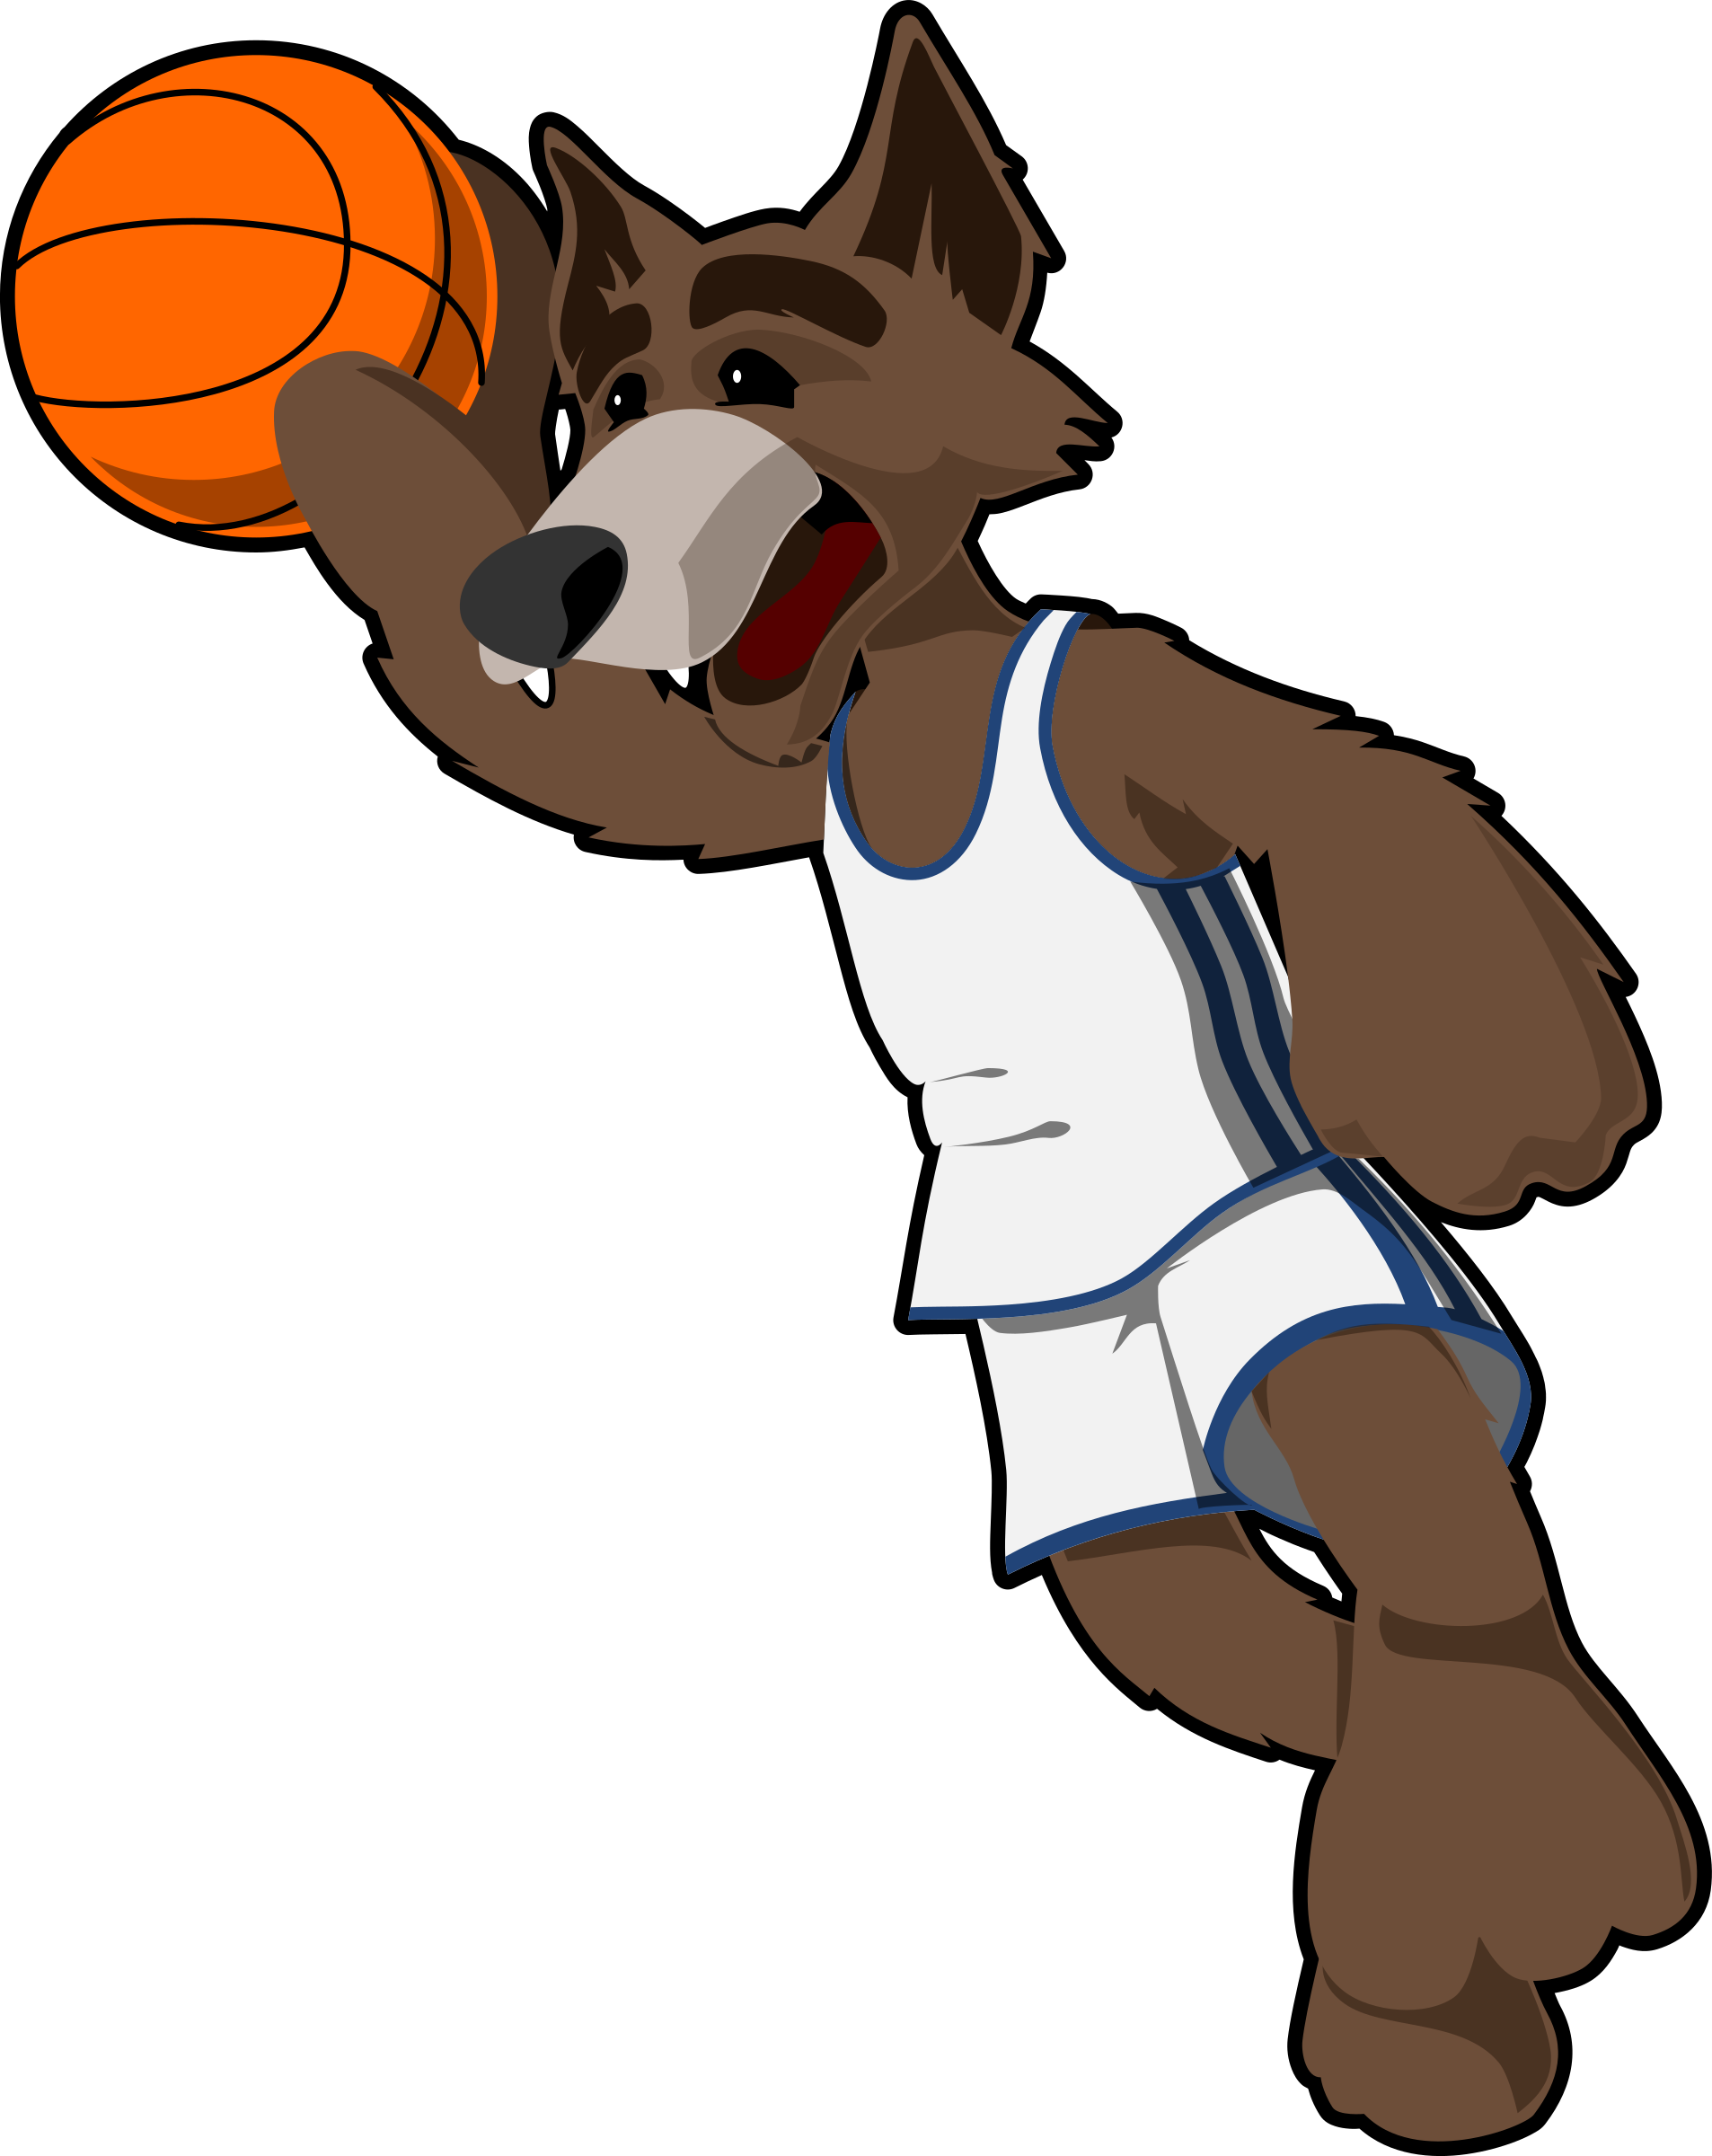 Animals playing basketball clipart vector black and white download Clipart - basketball wolf vector black and white download